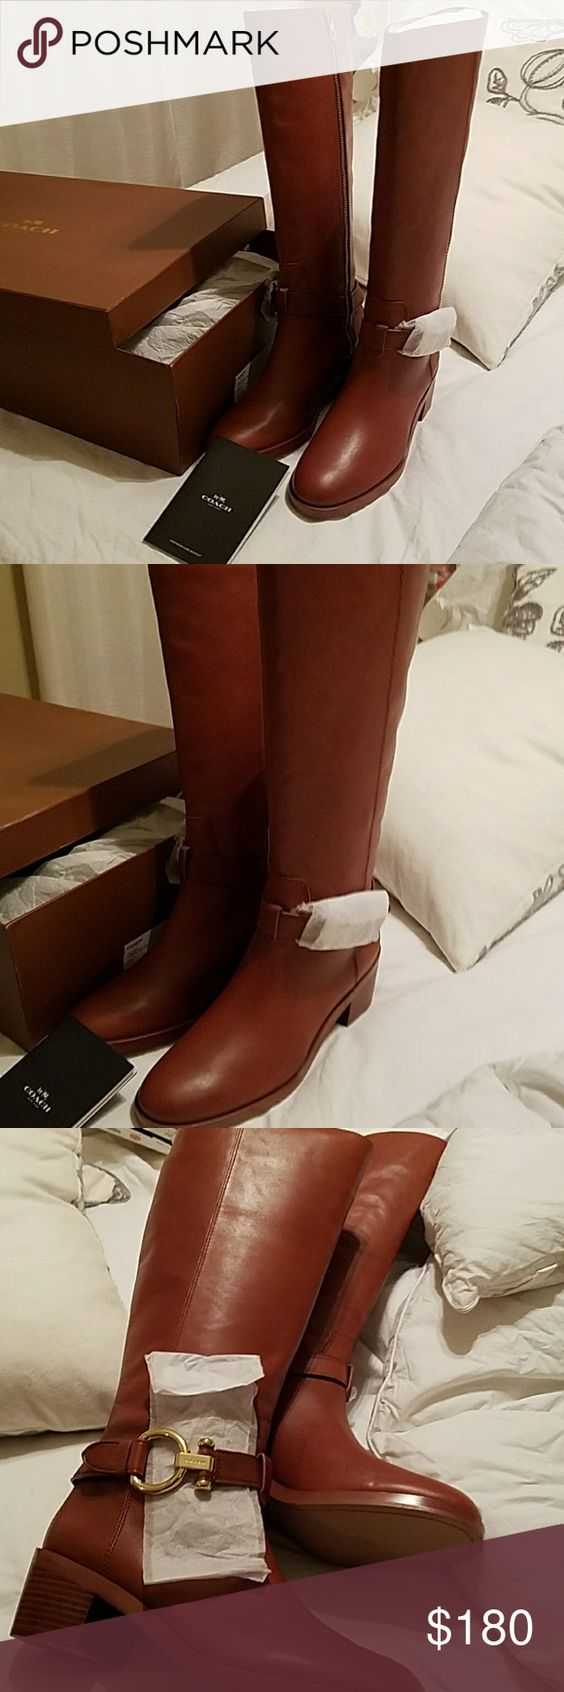 Brand new authentic Coach leather Carolina boots Brand new, never worn beautiful Carolina Coach leather riding boots. Still in original box. Purchased from Macy's. Beautiful camel colored. Not a scratch or blemish on them. 3 inch wooden heel. Gold buckle on sides. I SLEPT OUTSIDE ON CHRISTMAS FOR THESE JOKERS, SO DON'T LOWBALL!!! Coach Shoes Heeled Boots